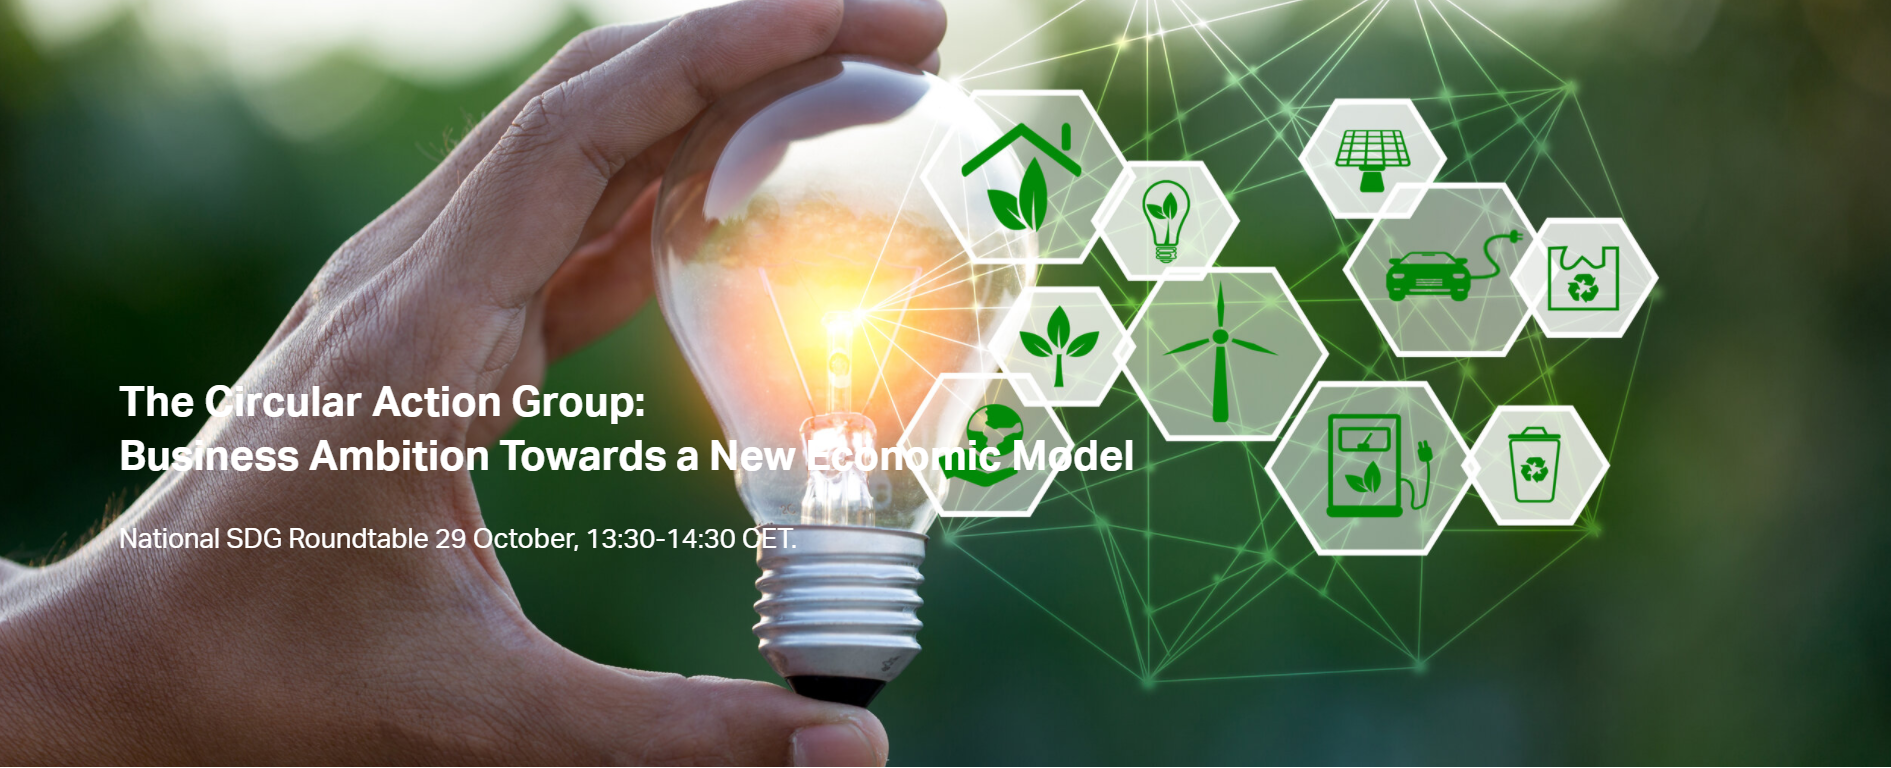 The Circular Action Group: Business Ambition Towards a New Economic Model